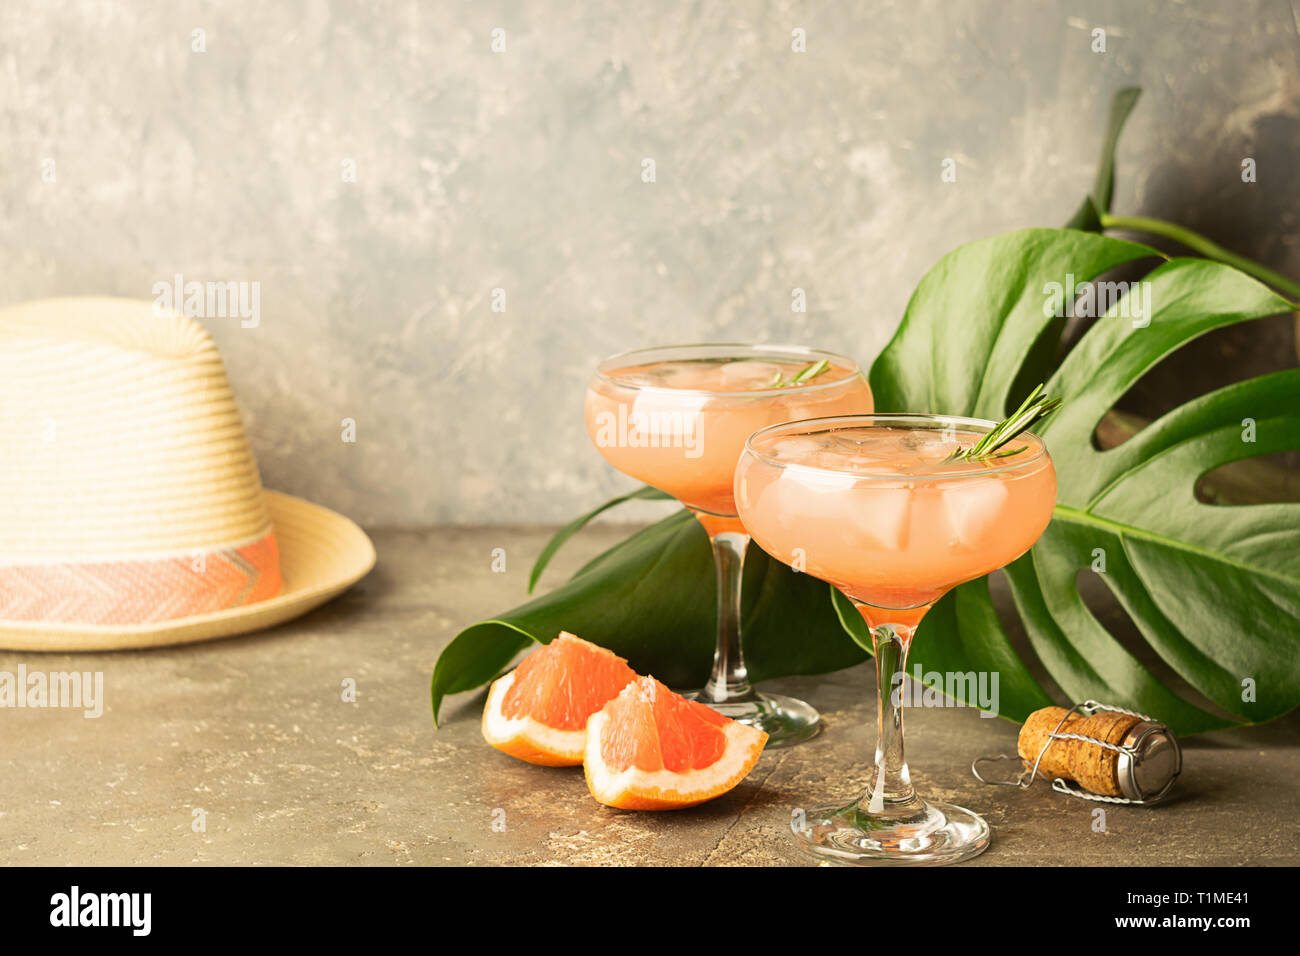 Refreshing grapefruit champagne juice in two glass goblets a concrete background with monster leaves and a summer hat. - Stock Image